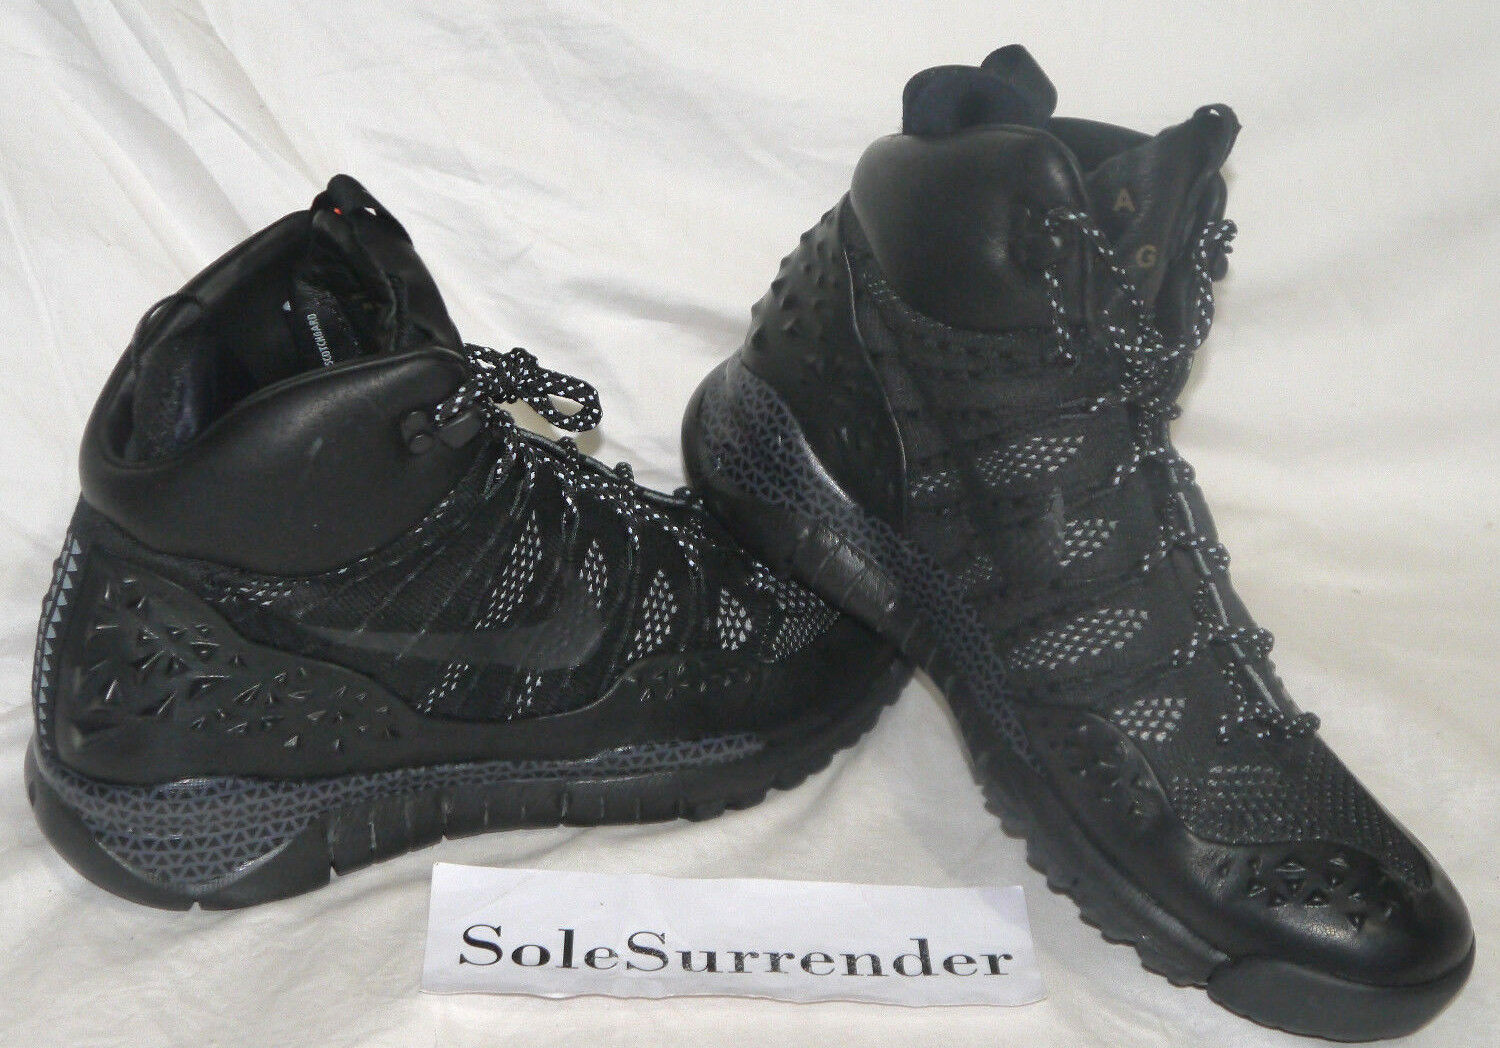 Nike Lupinek Flyknit ACG - CHOOSE SIZE - 826077-001 Boots SP Lab SFB Anthracite New shoes for men and women, limited time discount